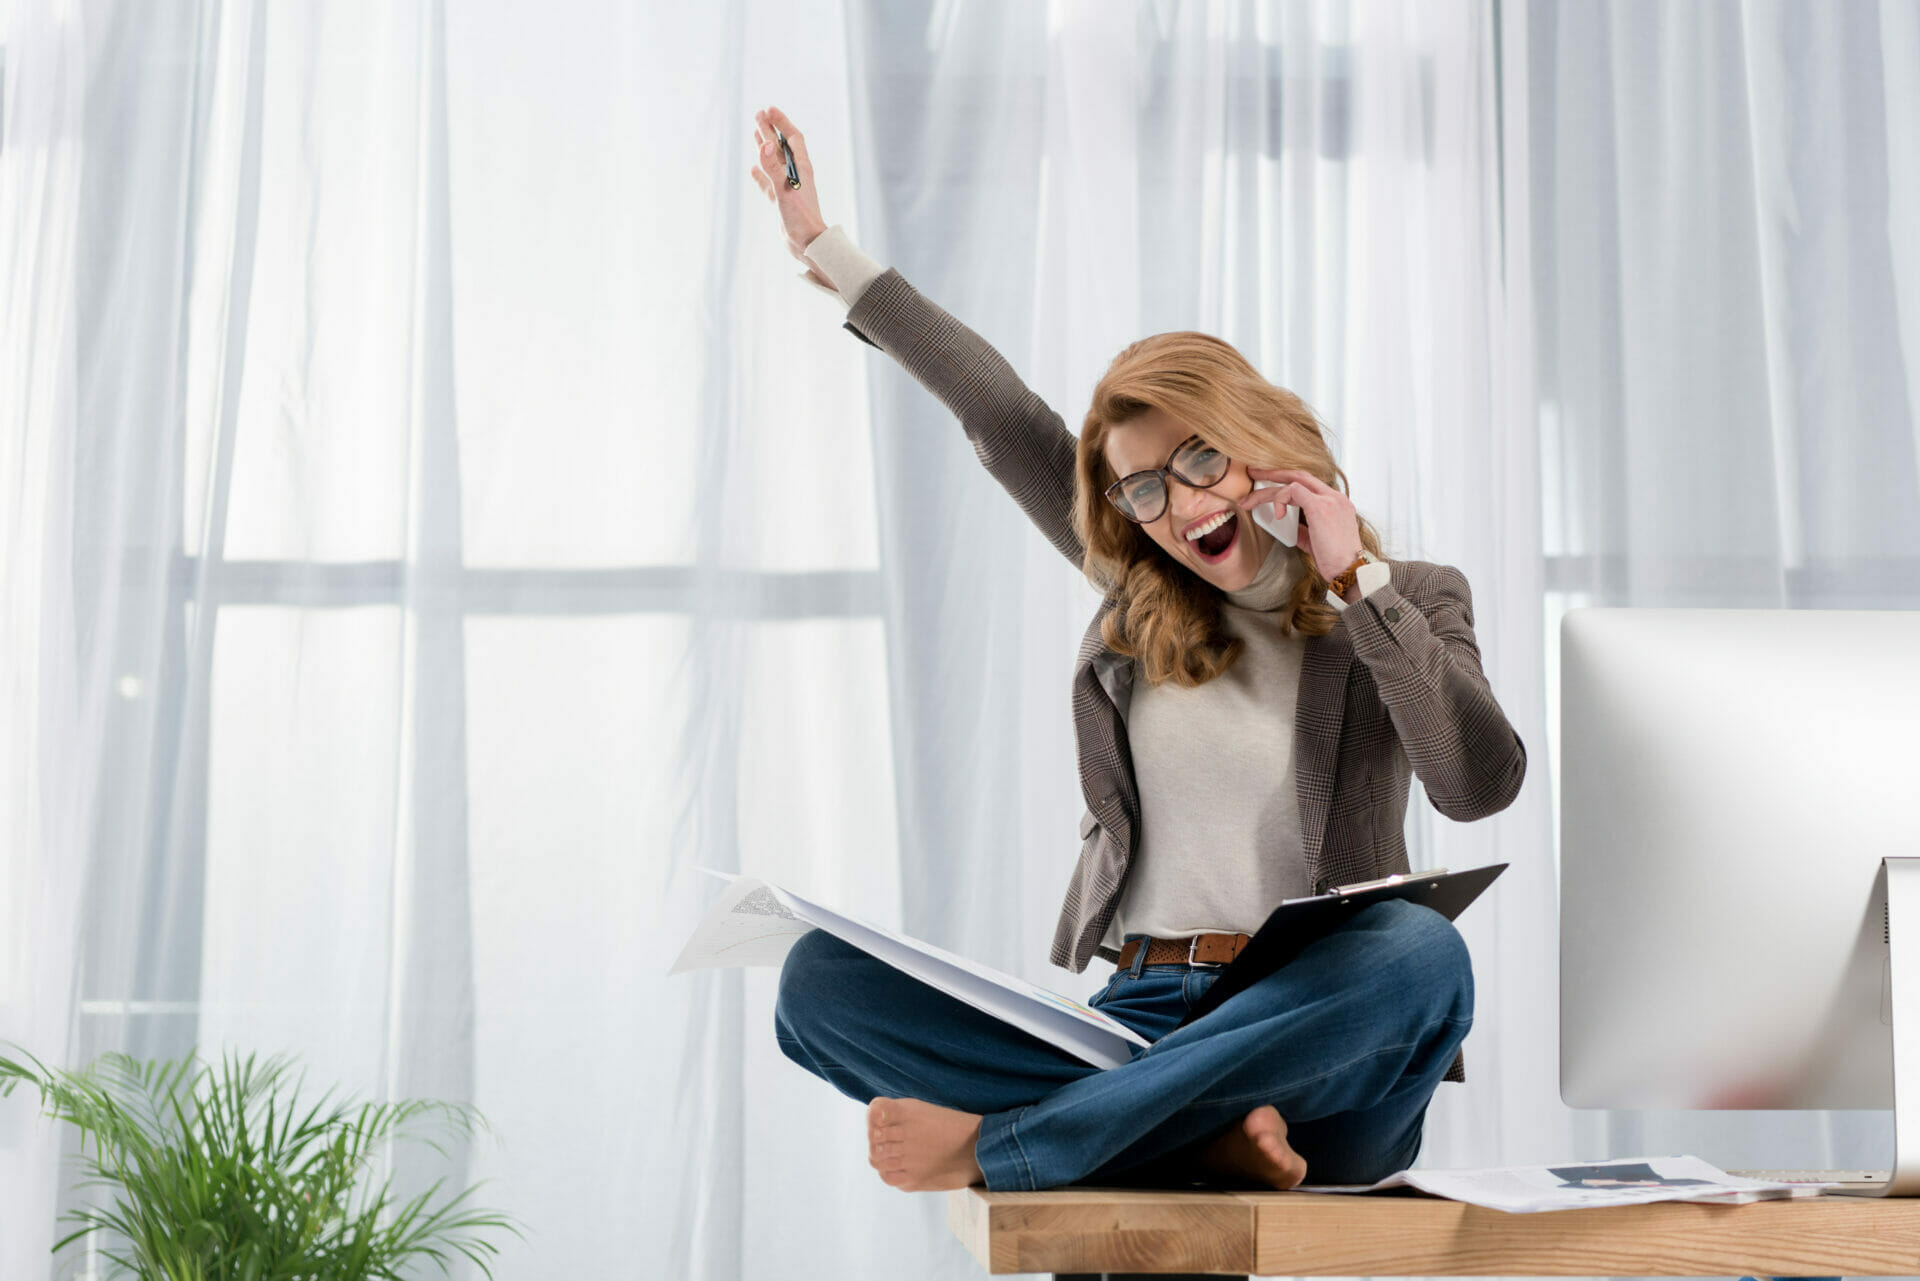 happy businesswoman with papers talking on smartphone while sitting on table in office - workplace flexibility